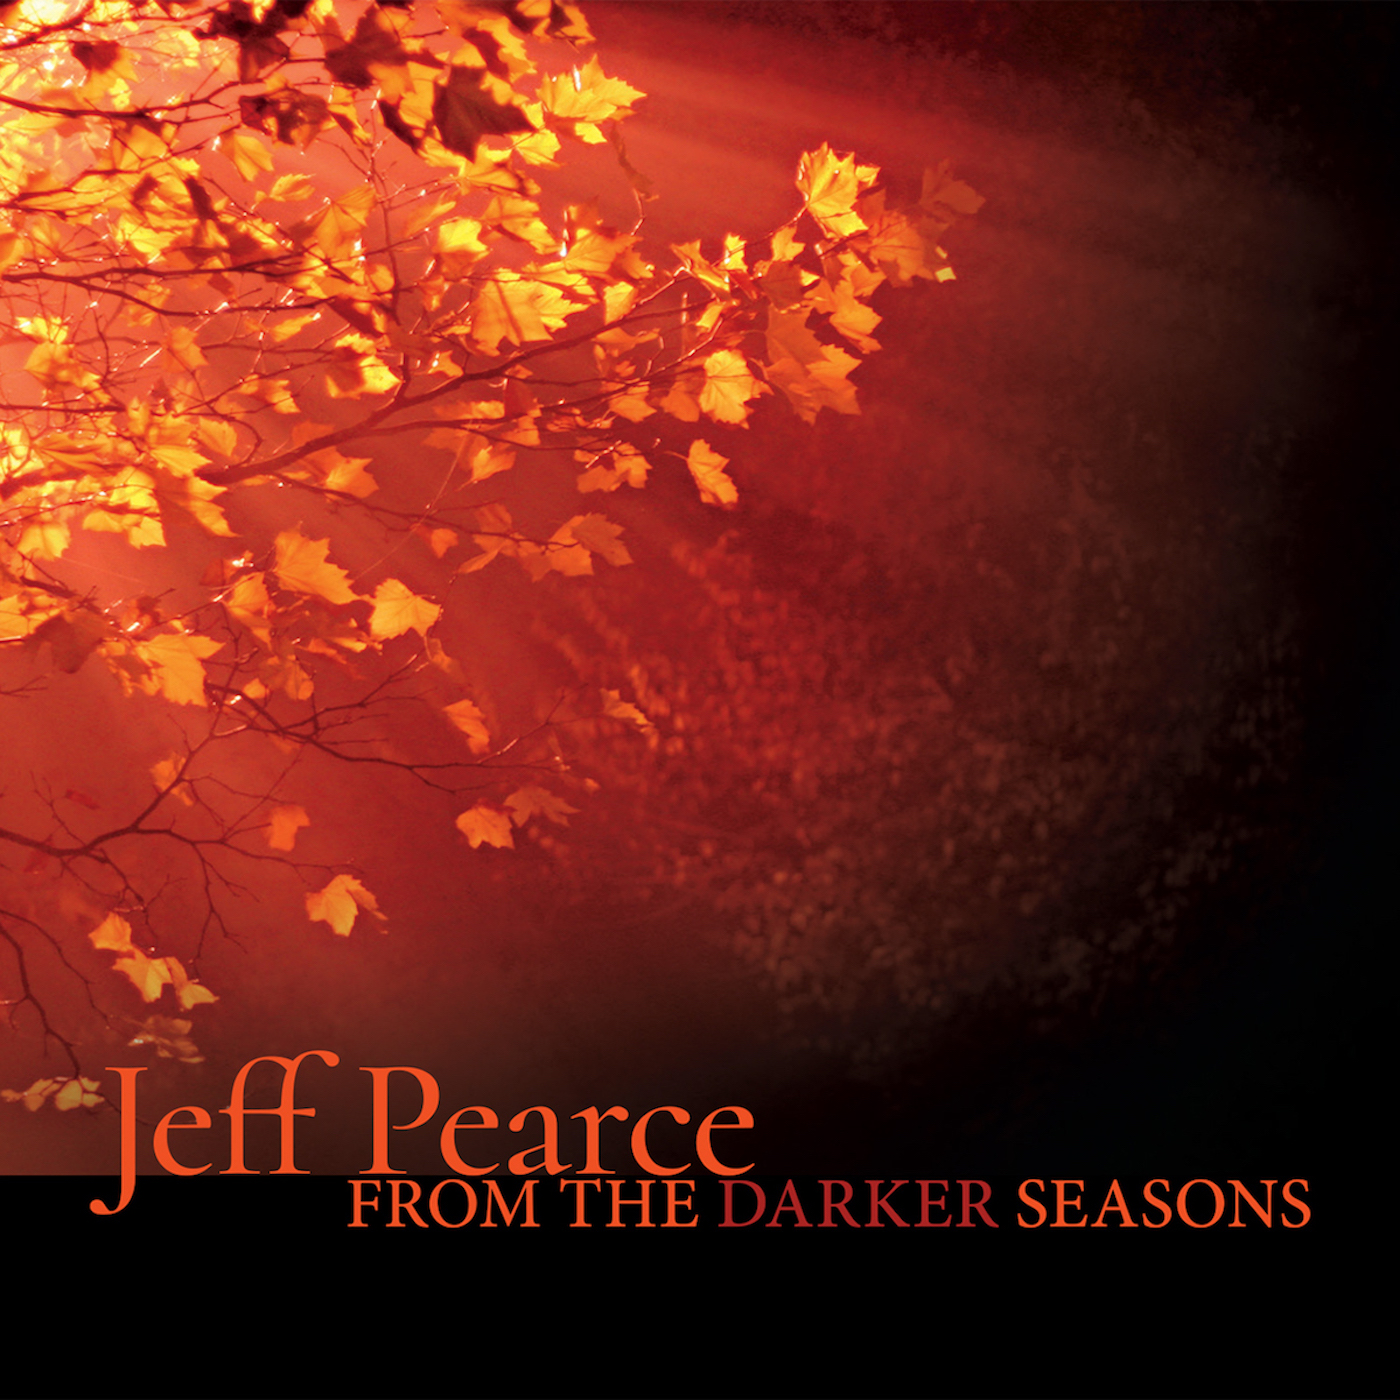 Jeff Pearce - From the Darker Season